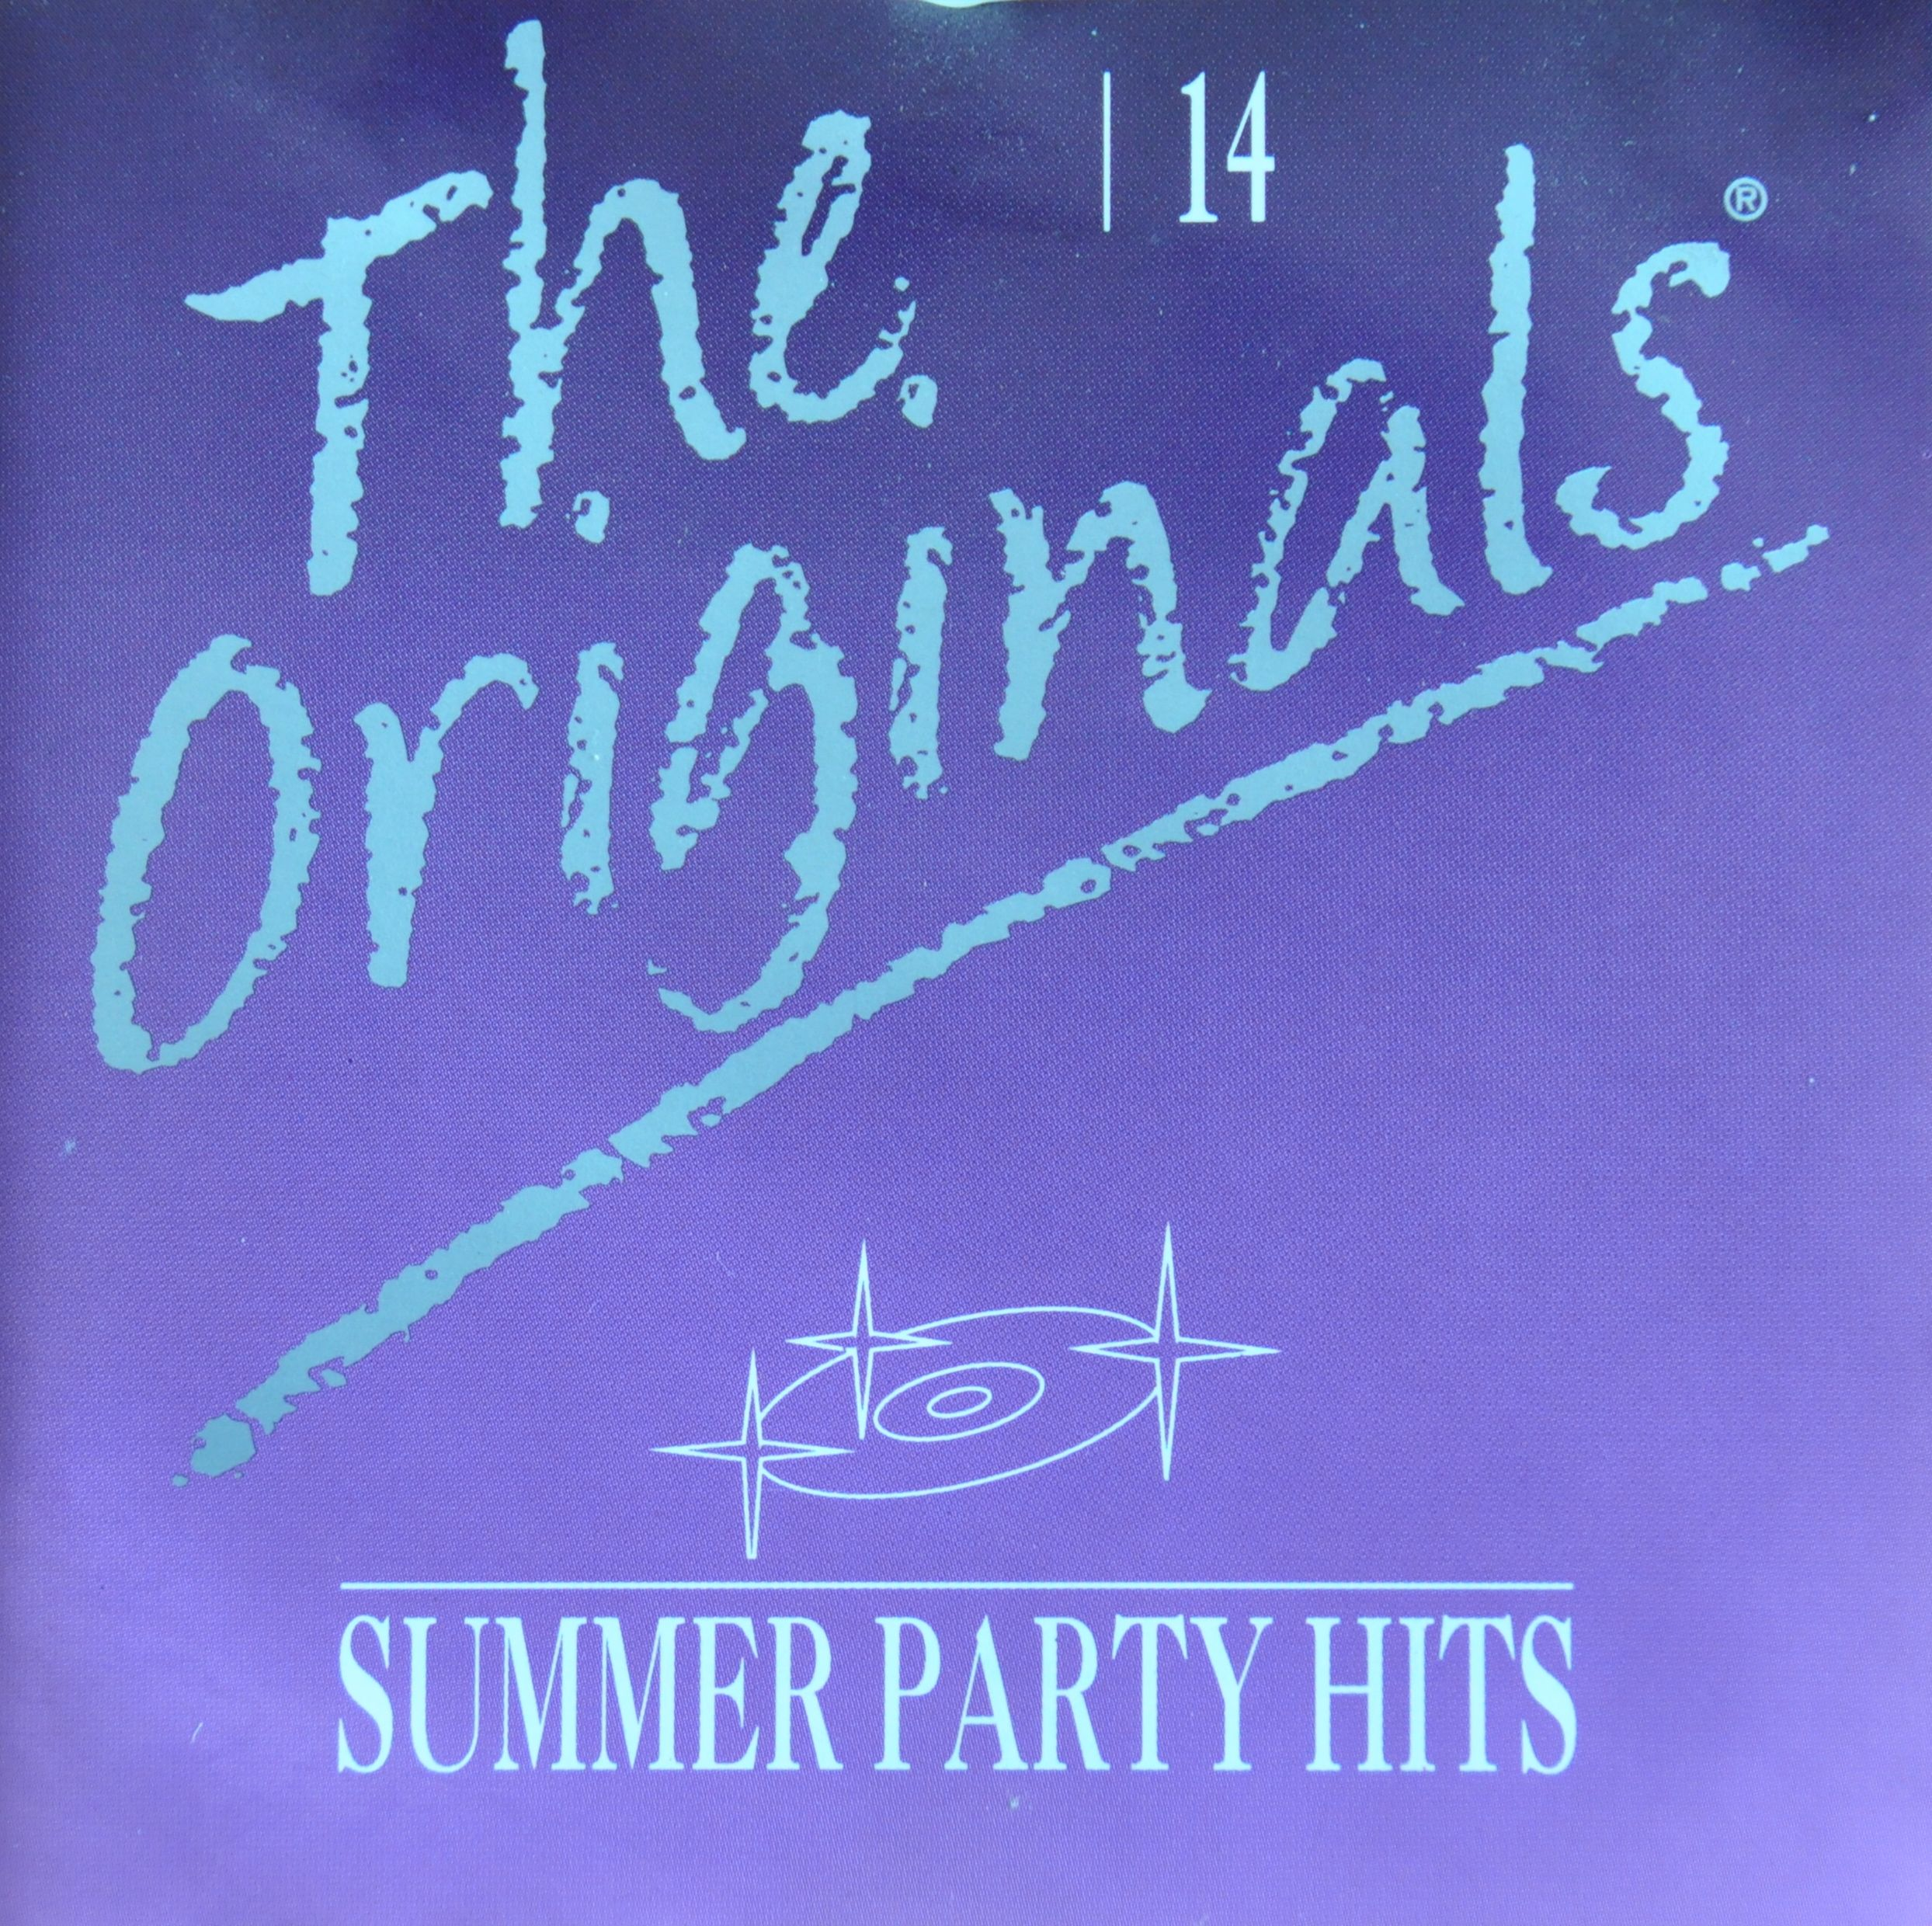 jaquettes2/The-Originals_14_Summer-Party-Hits.jpg